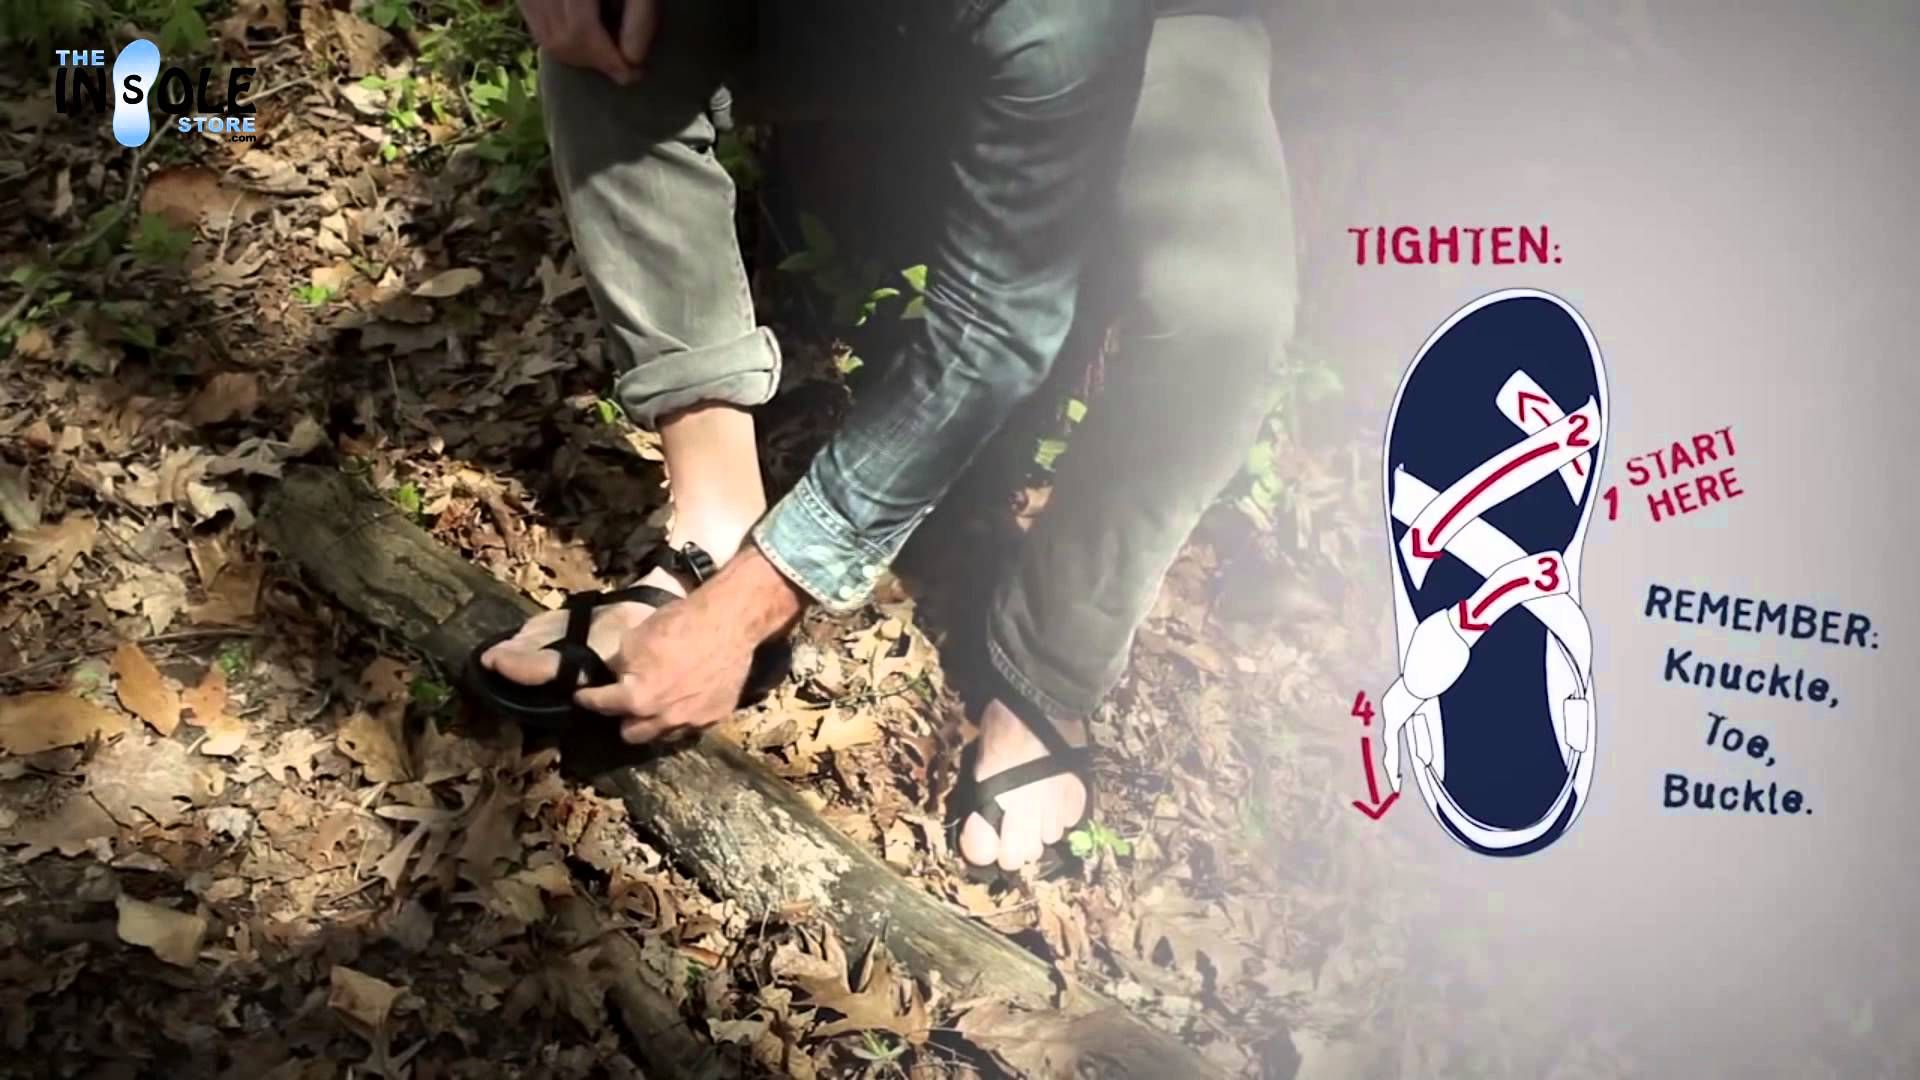 How To Fit Adjust Chaco S With A Toe Loop Sandal Theinsolestore Com Chacos Sandals Chacos Toe Loop Sandals